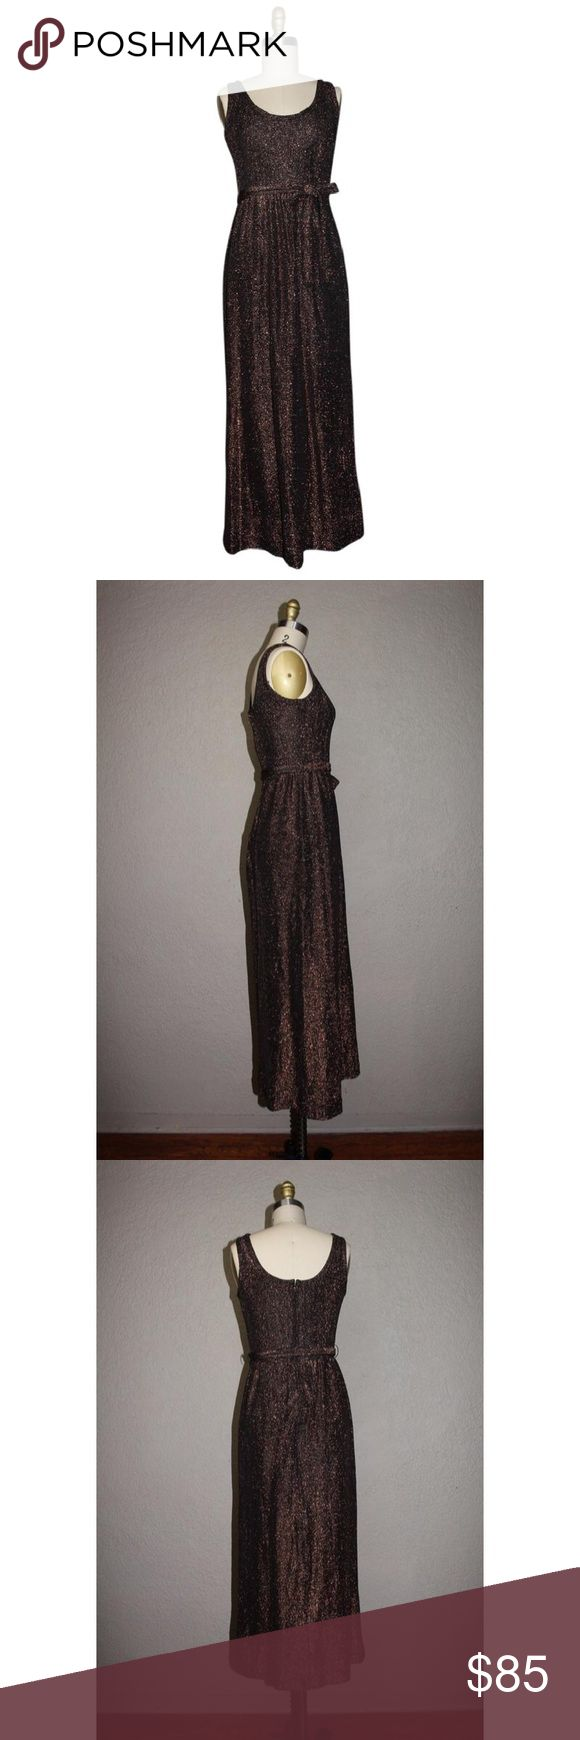 Victor Costa Romantica Bronze Knit Gown Dress Victor Costa Romantica Vintage Bronze Metallic Knit Gown With Matching Tie. Like New Condition. This item may have been worn but has no visible signs of wear. victor costa Dresses Prom